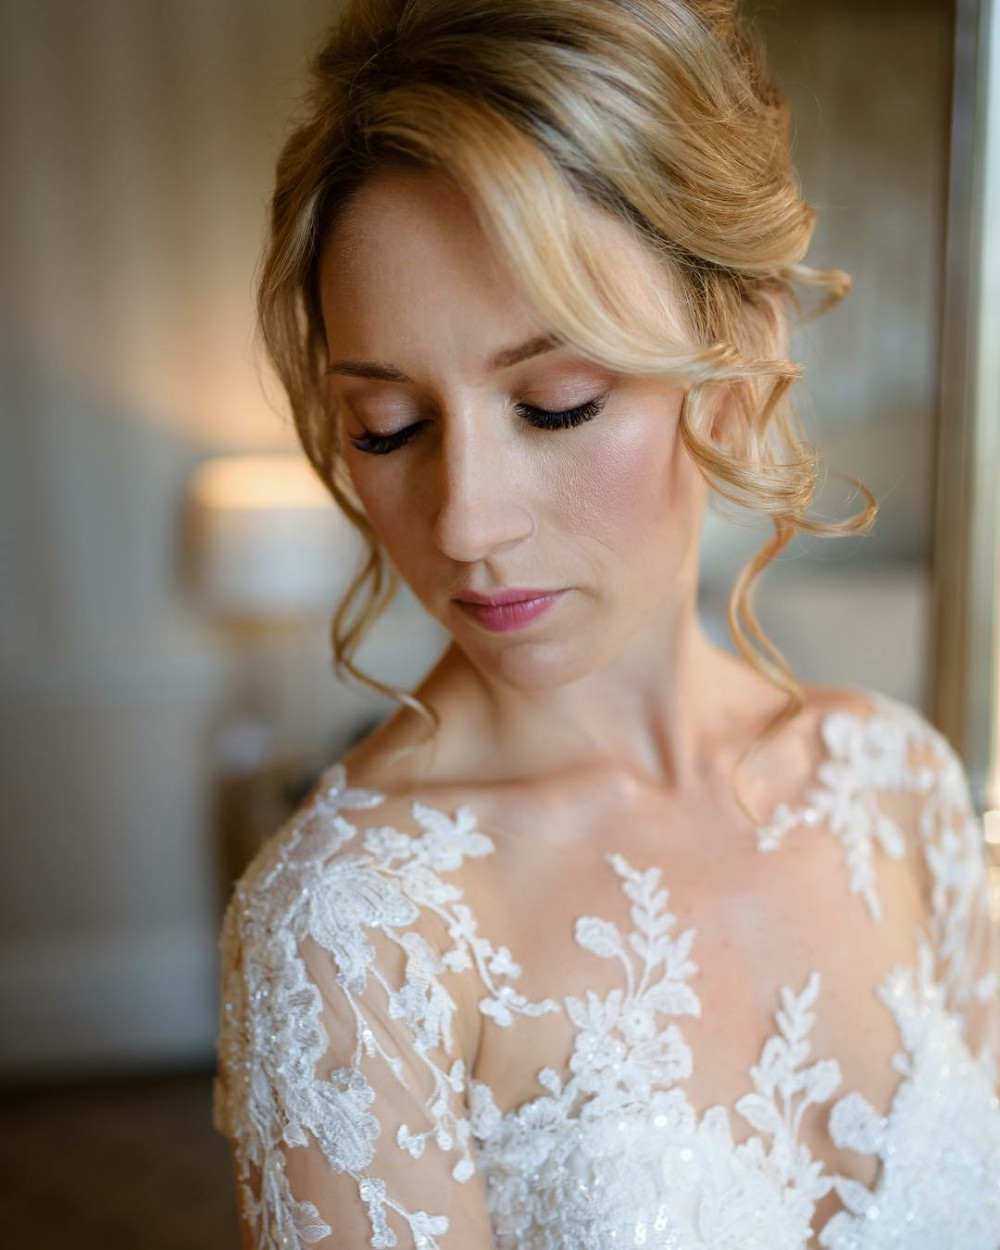 The stunning Victoria ????❤️ - Make Me Bridal Artist: All About You. #bohemian #classic #beautiful